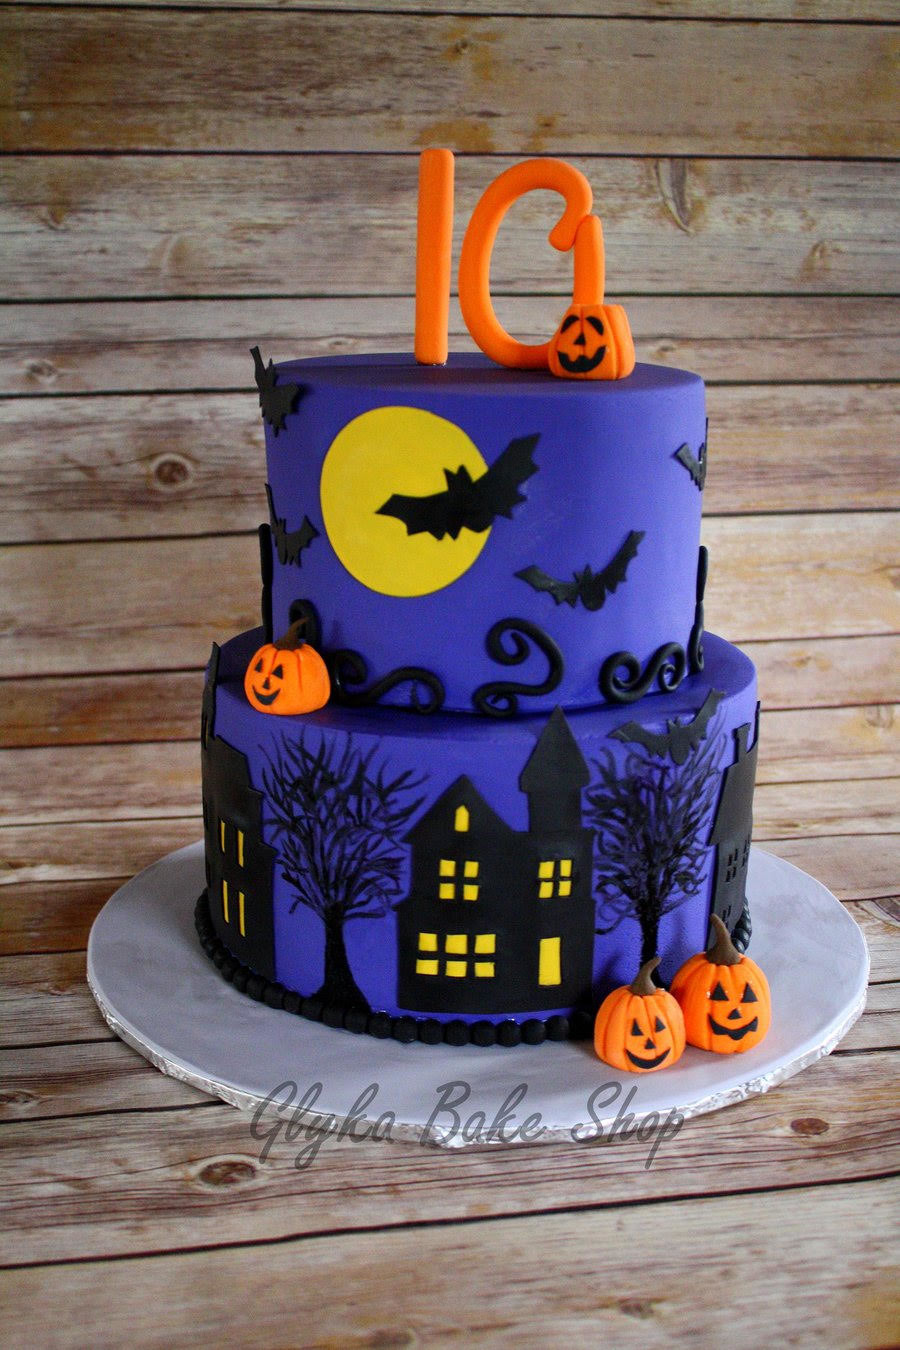 Halloween Bundt Cake Decorations 13 Ghoulishly Festive Halloween Birthday Cakes Southern Living